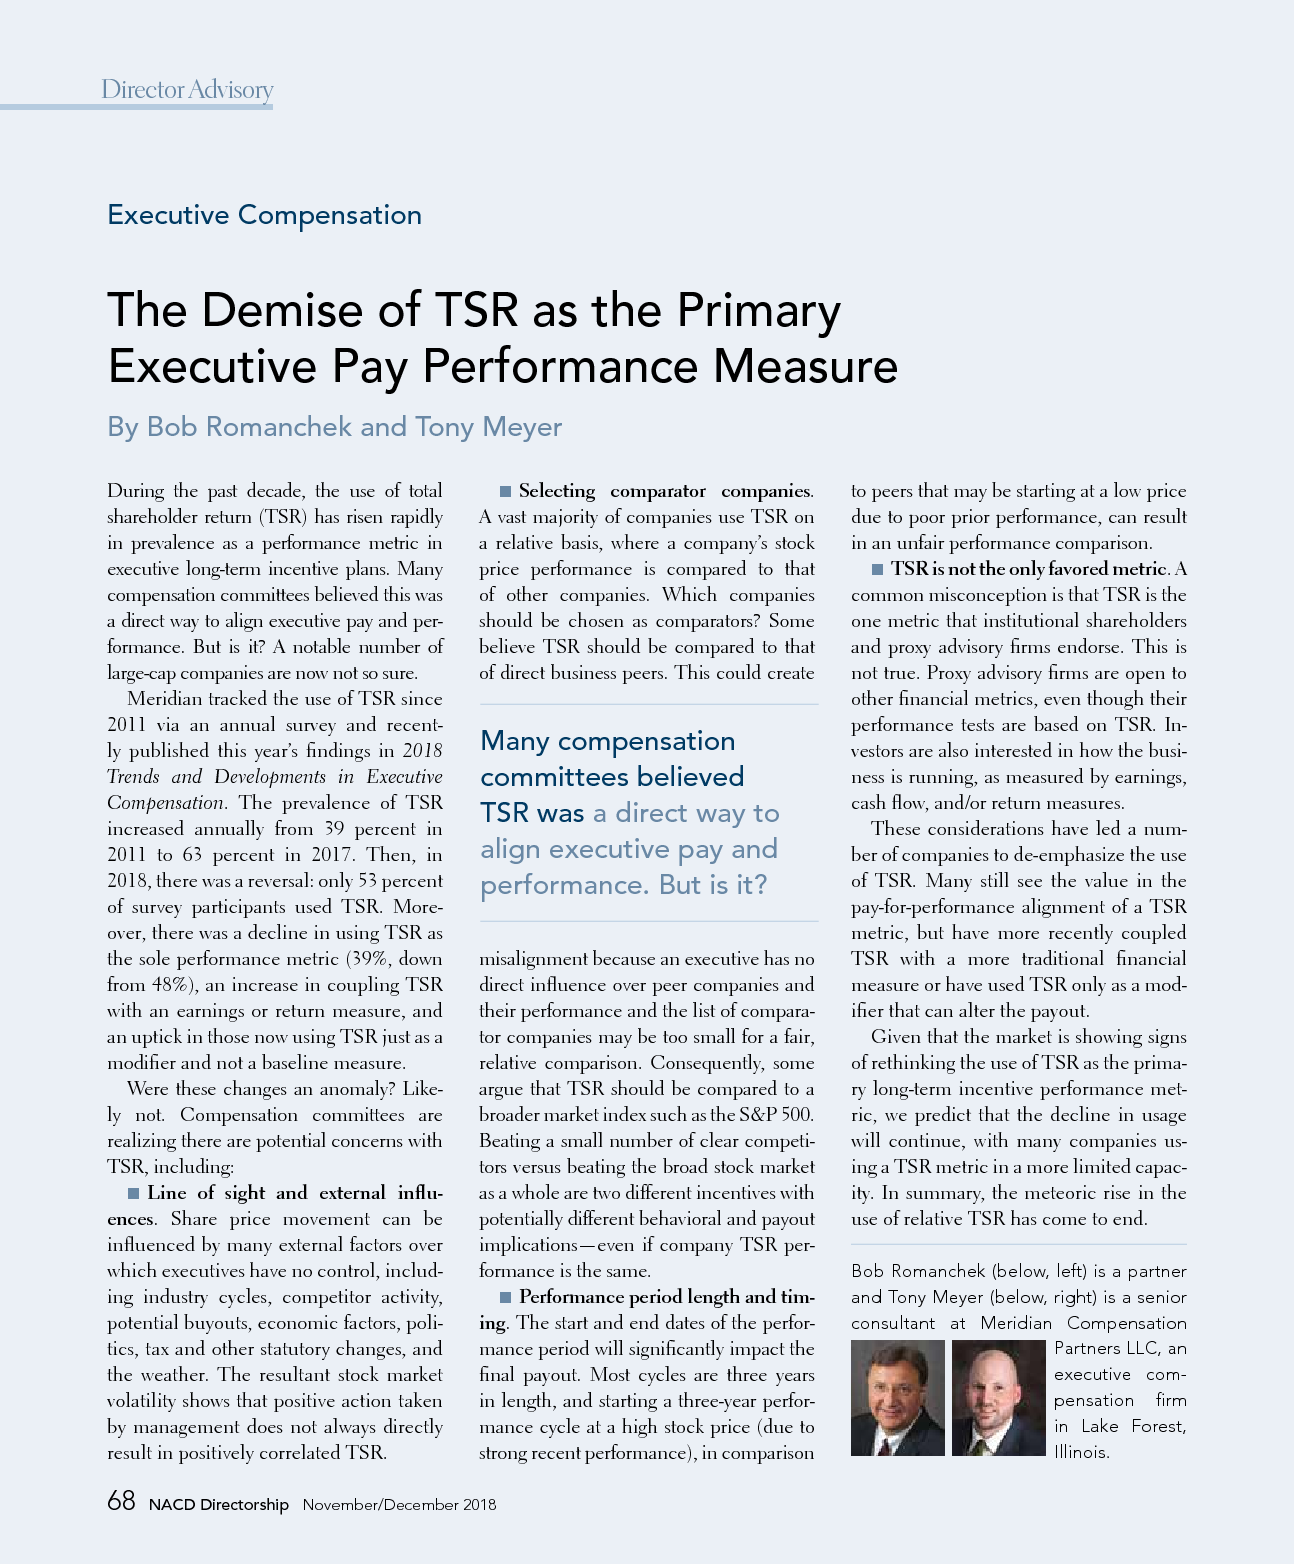 The Demise of TSR as the Primary Executive Pay Performance Measure (PDF)